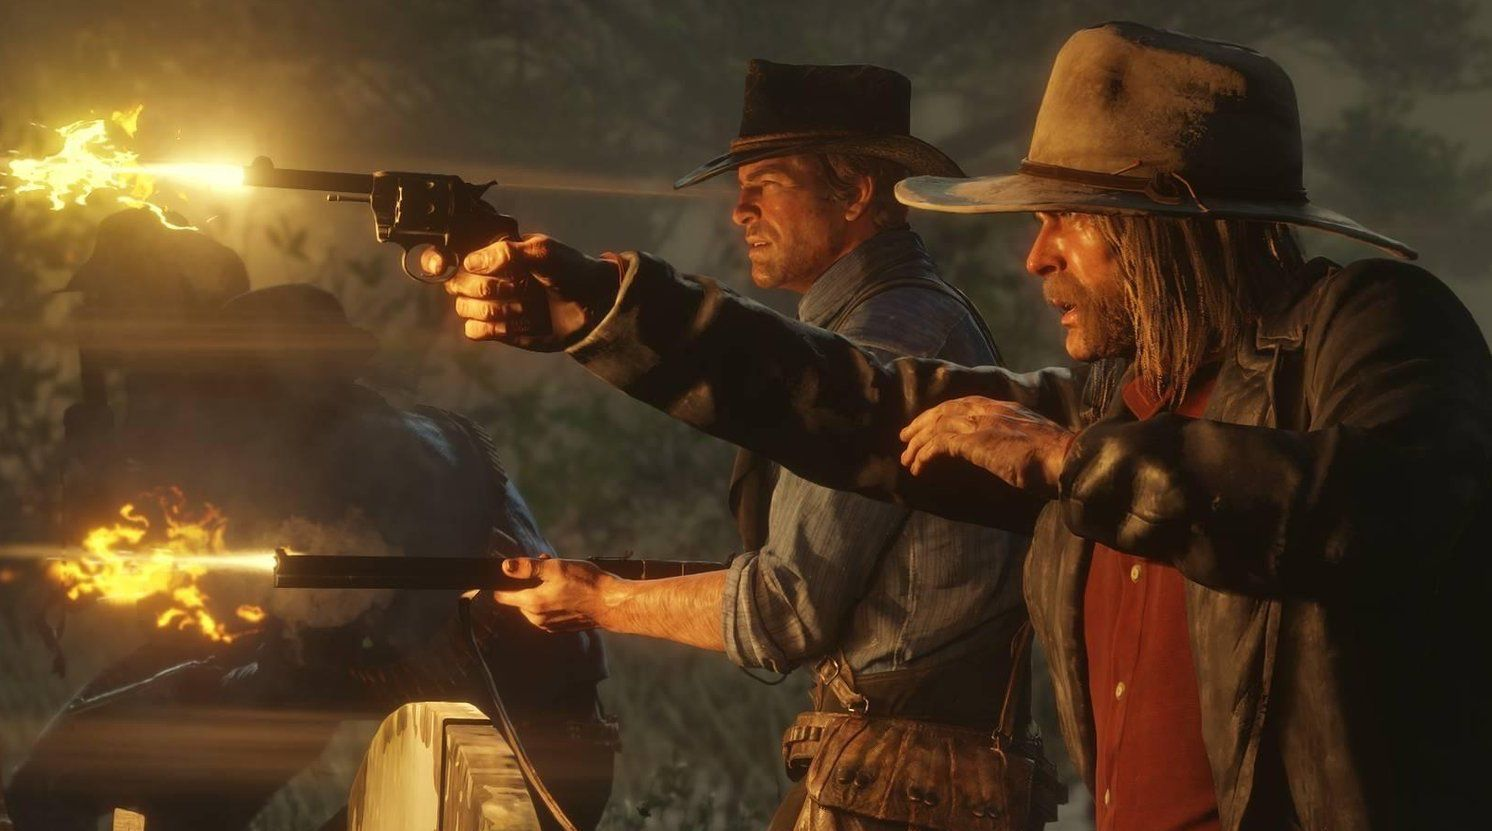 Red Dead Redemption 2: 12 Hidden Bosses Every Player Needs To Find (And 8 Bosses That Aren't Worth It)